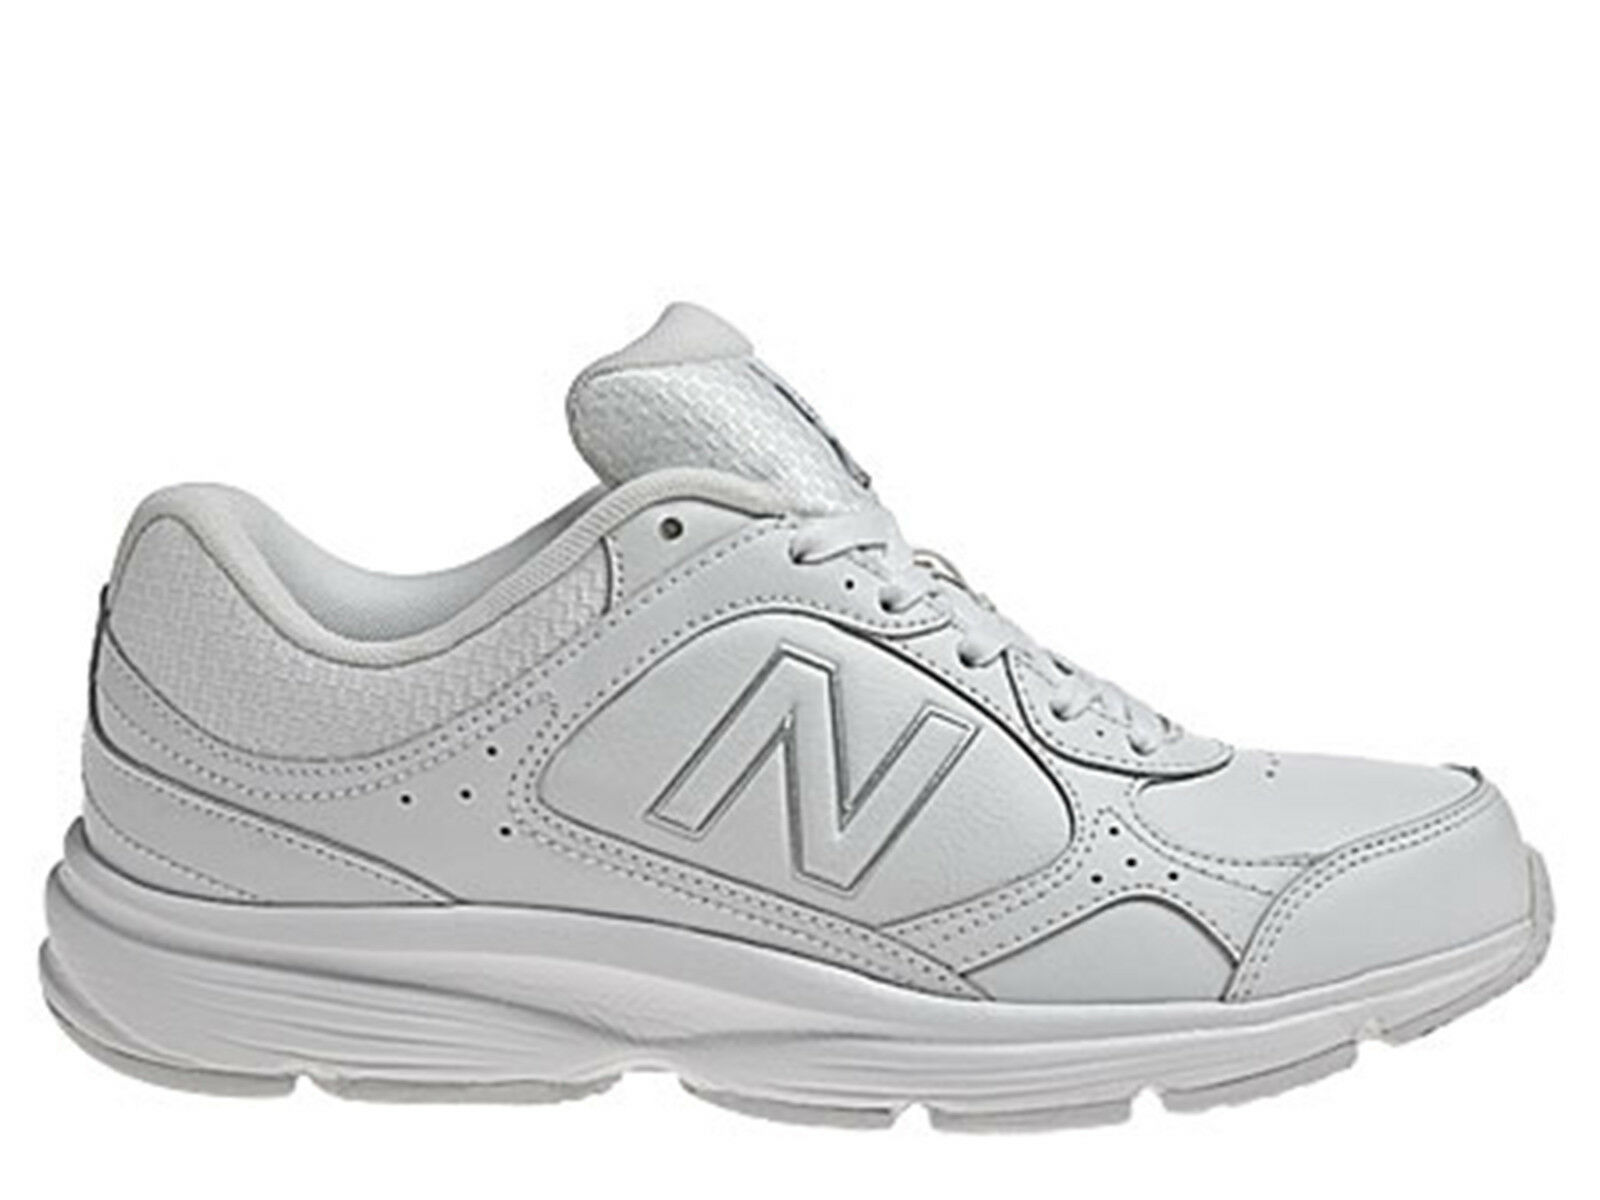 Brand New New Balance Walking Men's Athletic Fashion Sneakers [MW456WS]